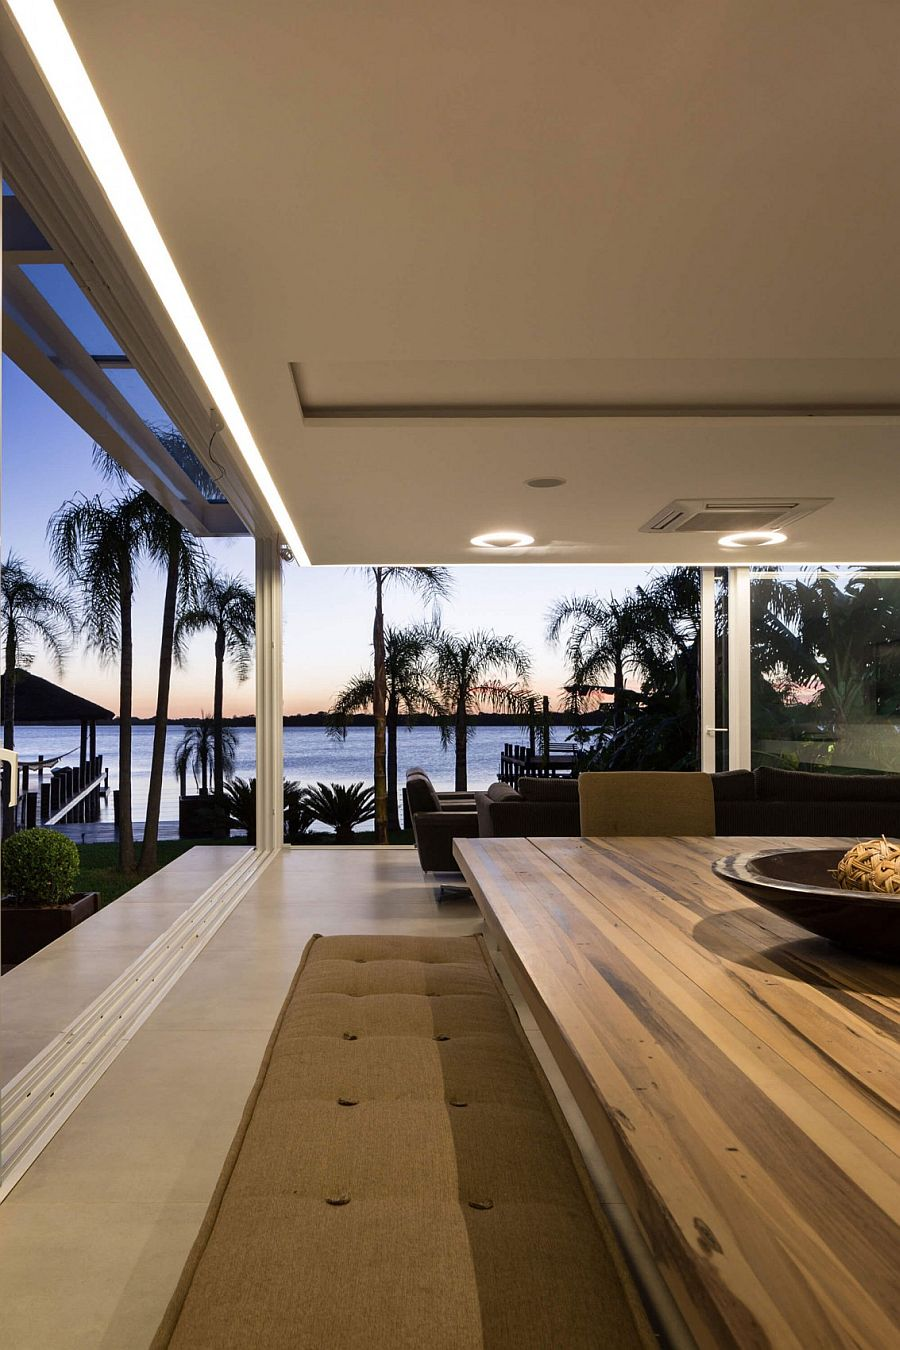 Ergonomic ambient lighting brings warmth to the stylish pool house